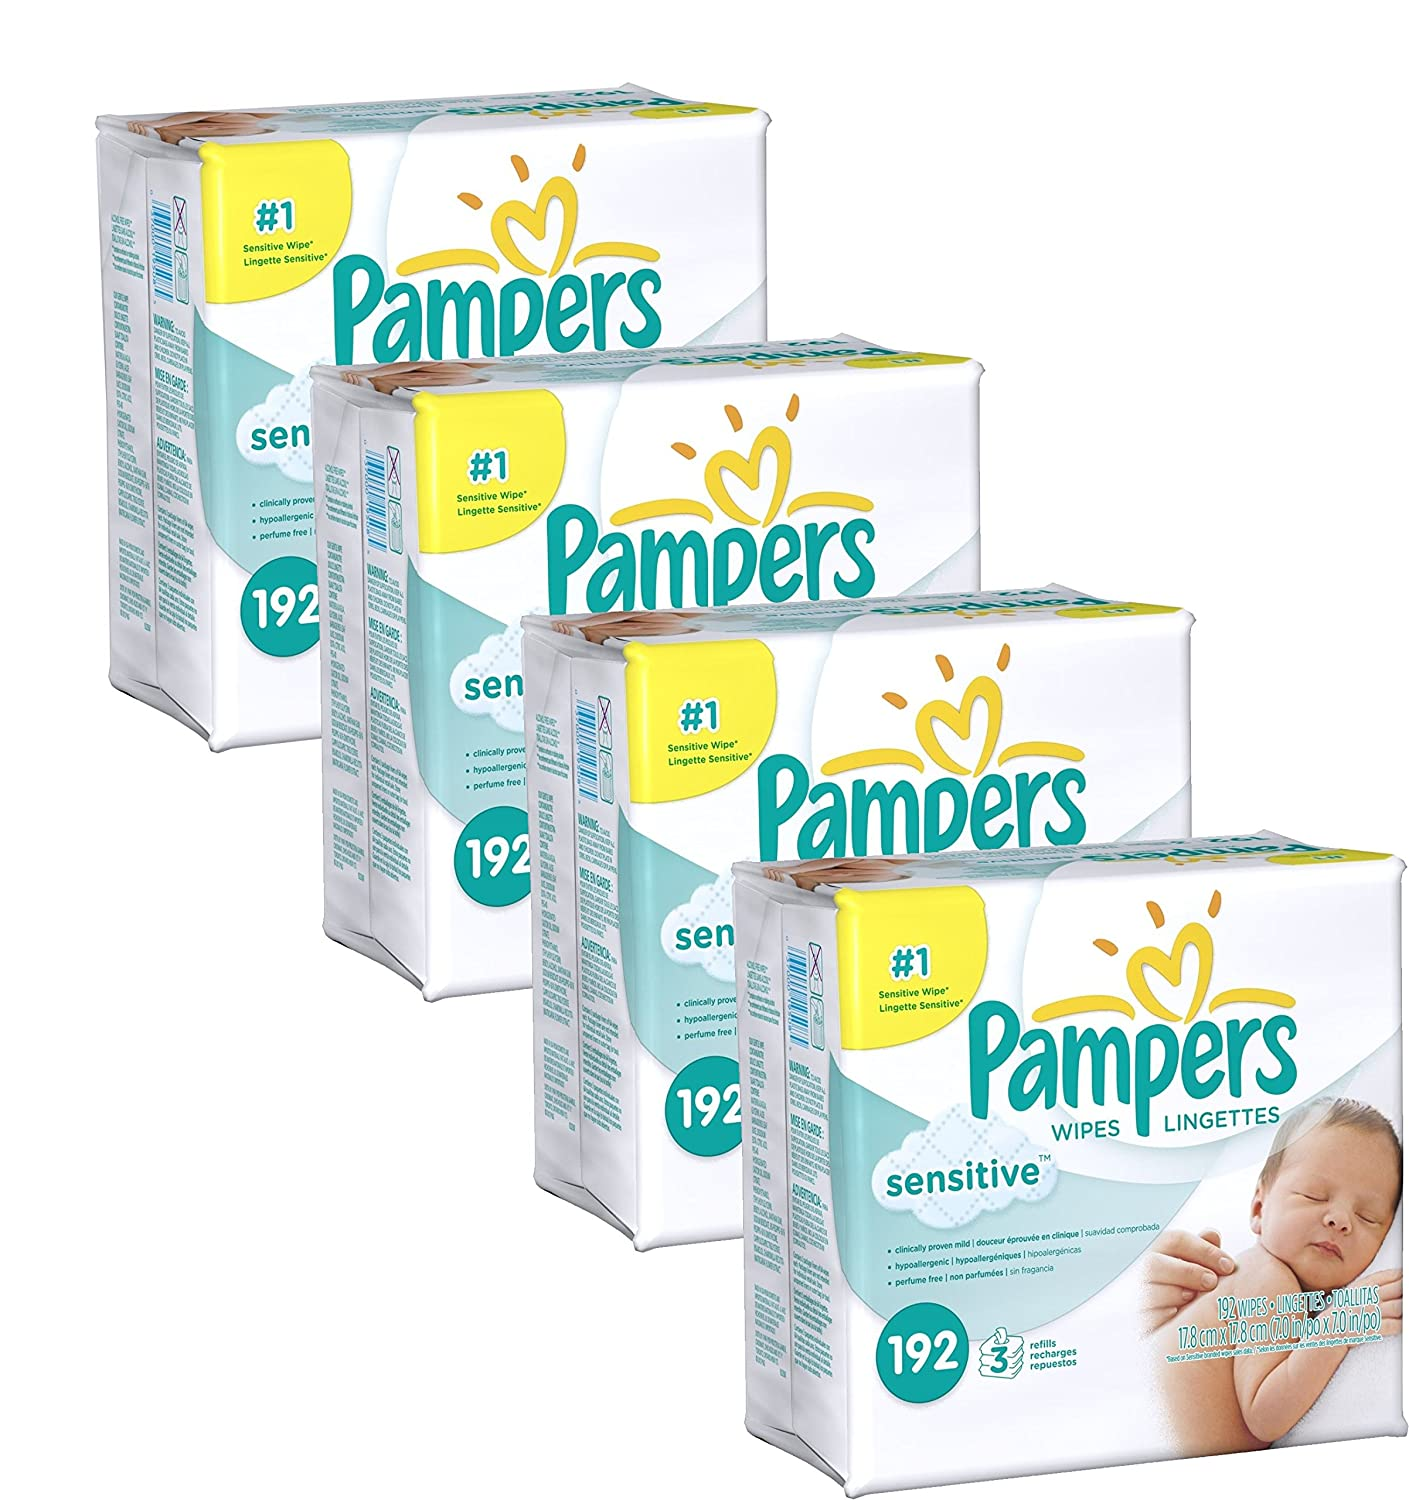 Amazon.com: Pampers Sensitive Wipes, 4 Pack of 192 Wipes, 768 Total Wipes: Health & Personal Care